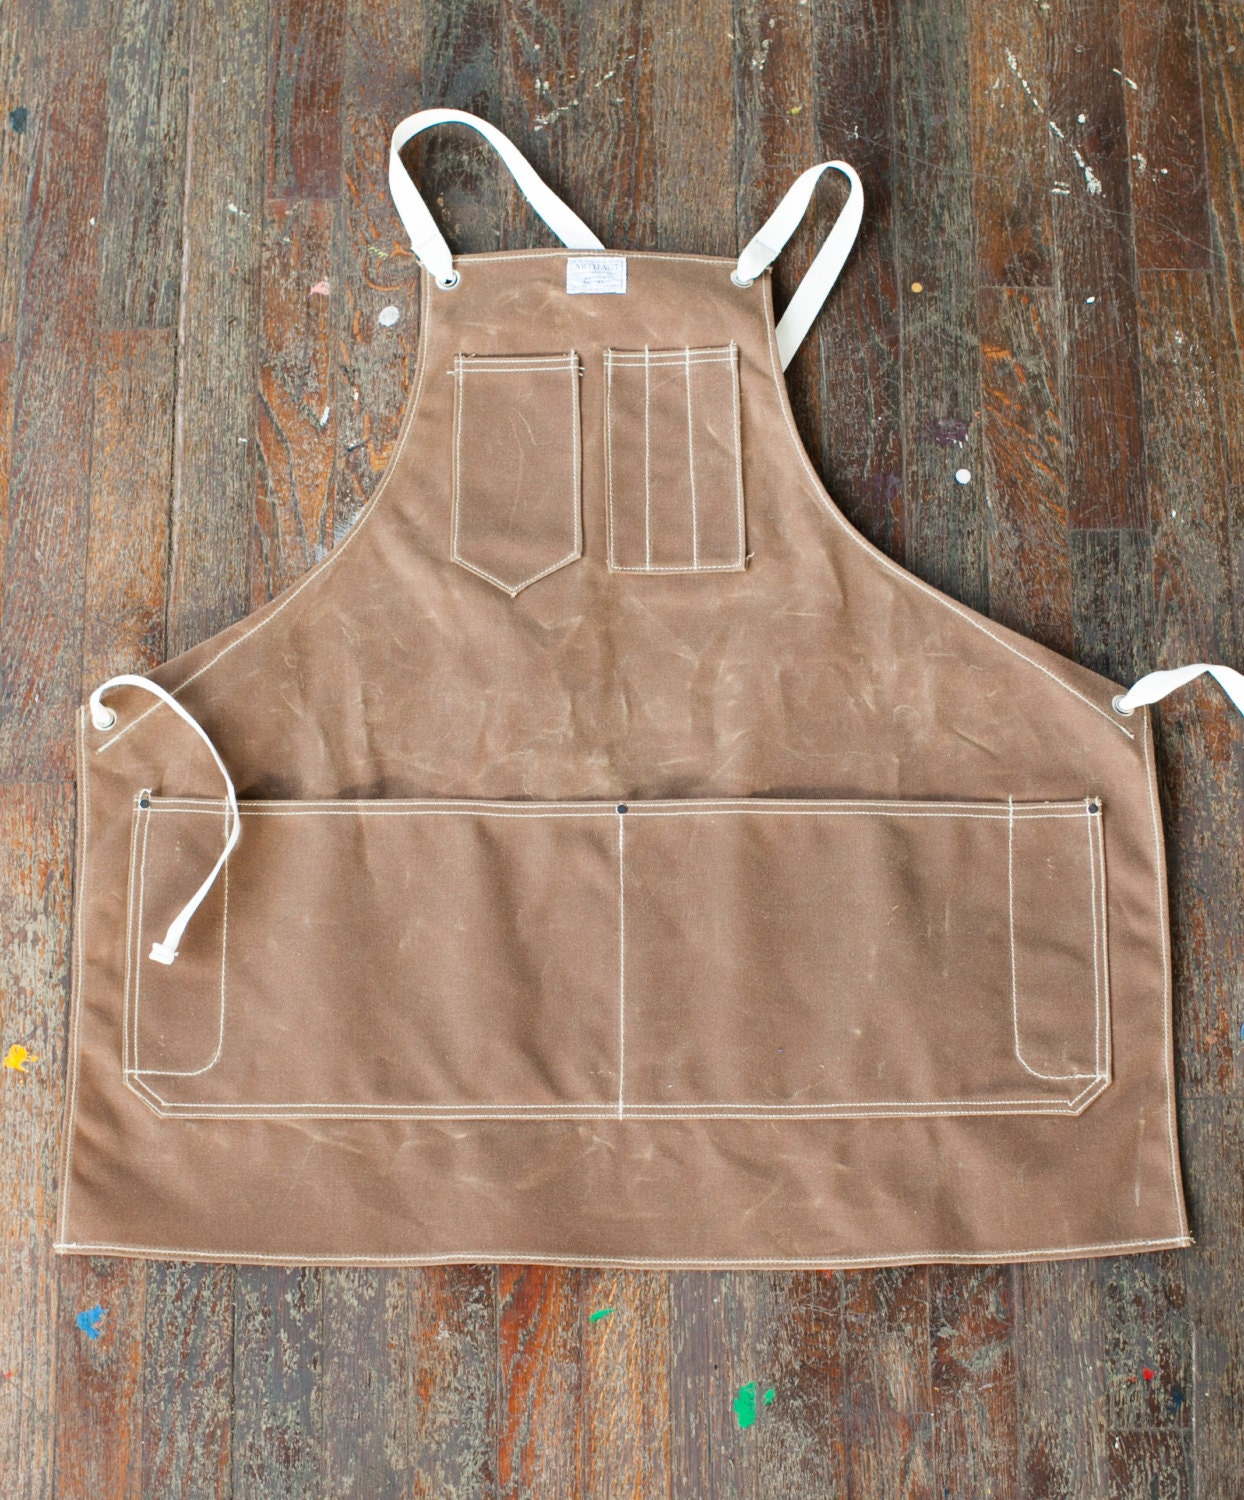 No.325-T Artisan Apron in Rust Wax & Khaki Cotton Tapes